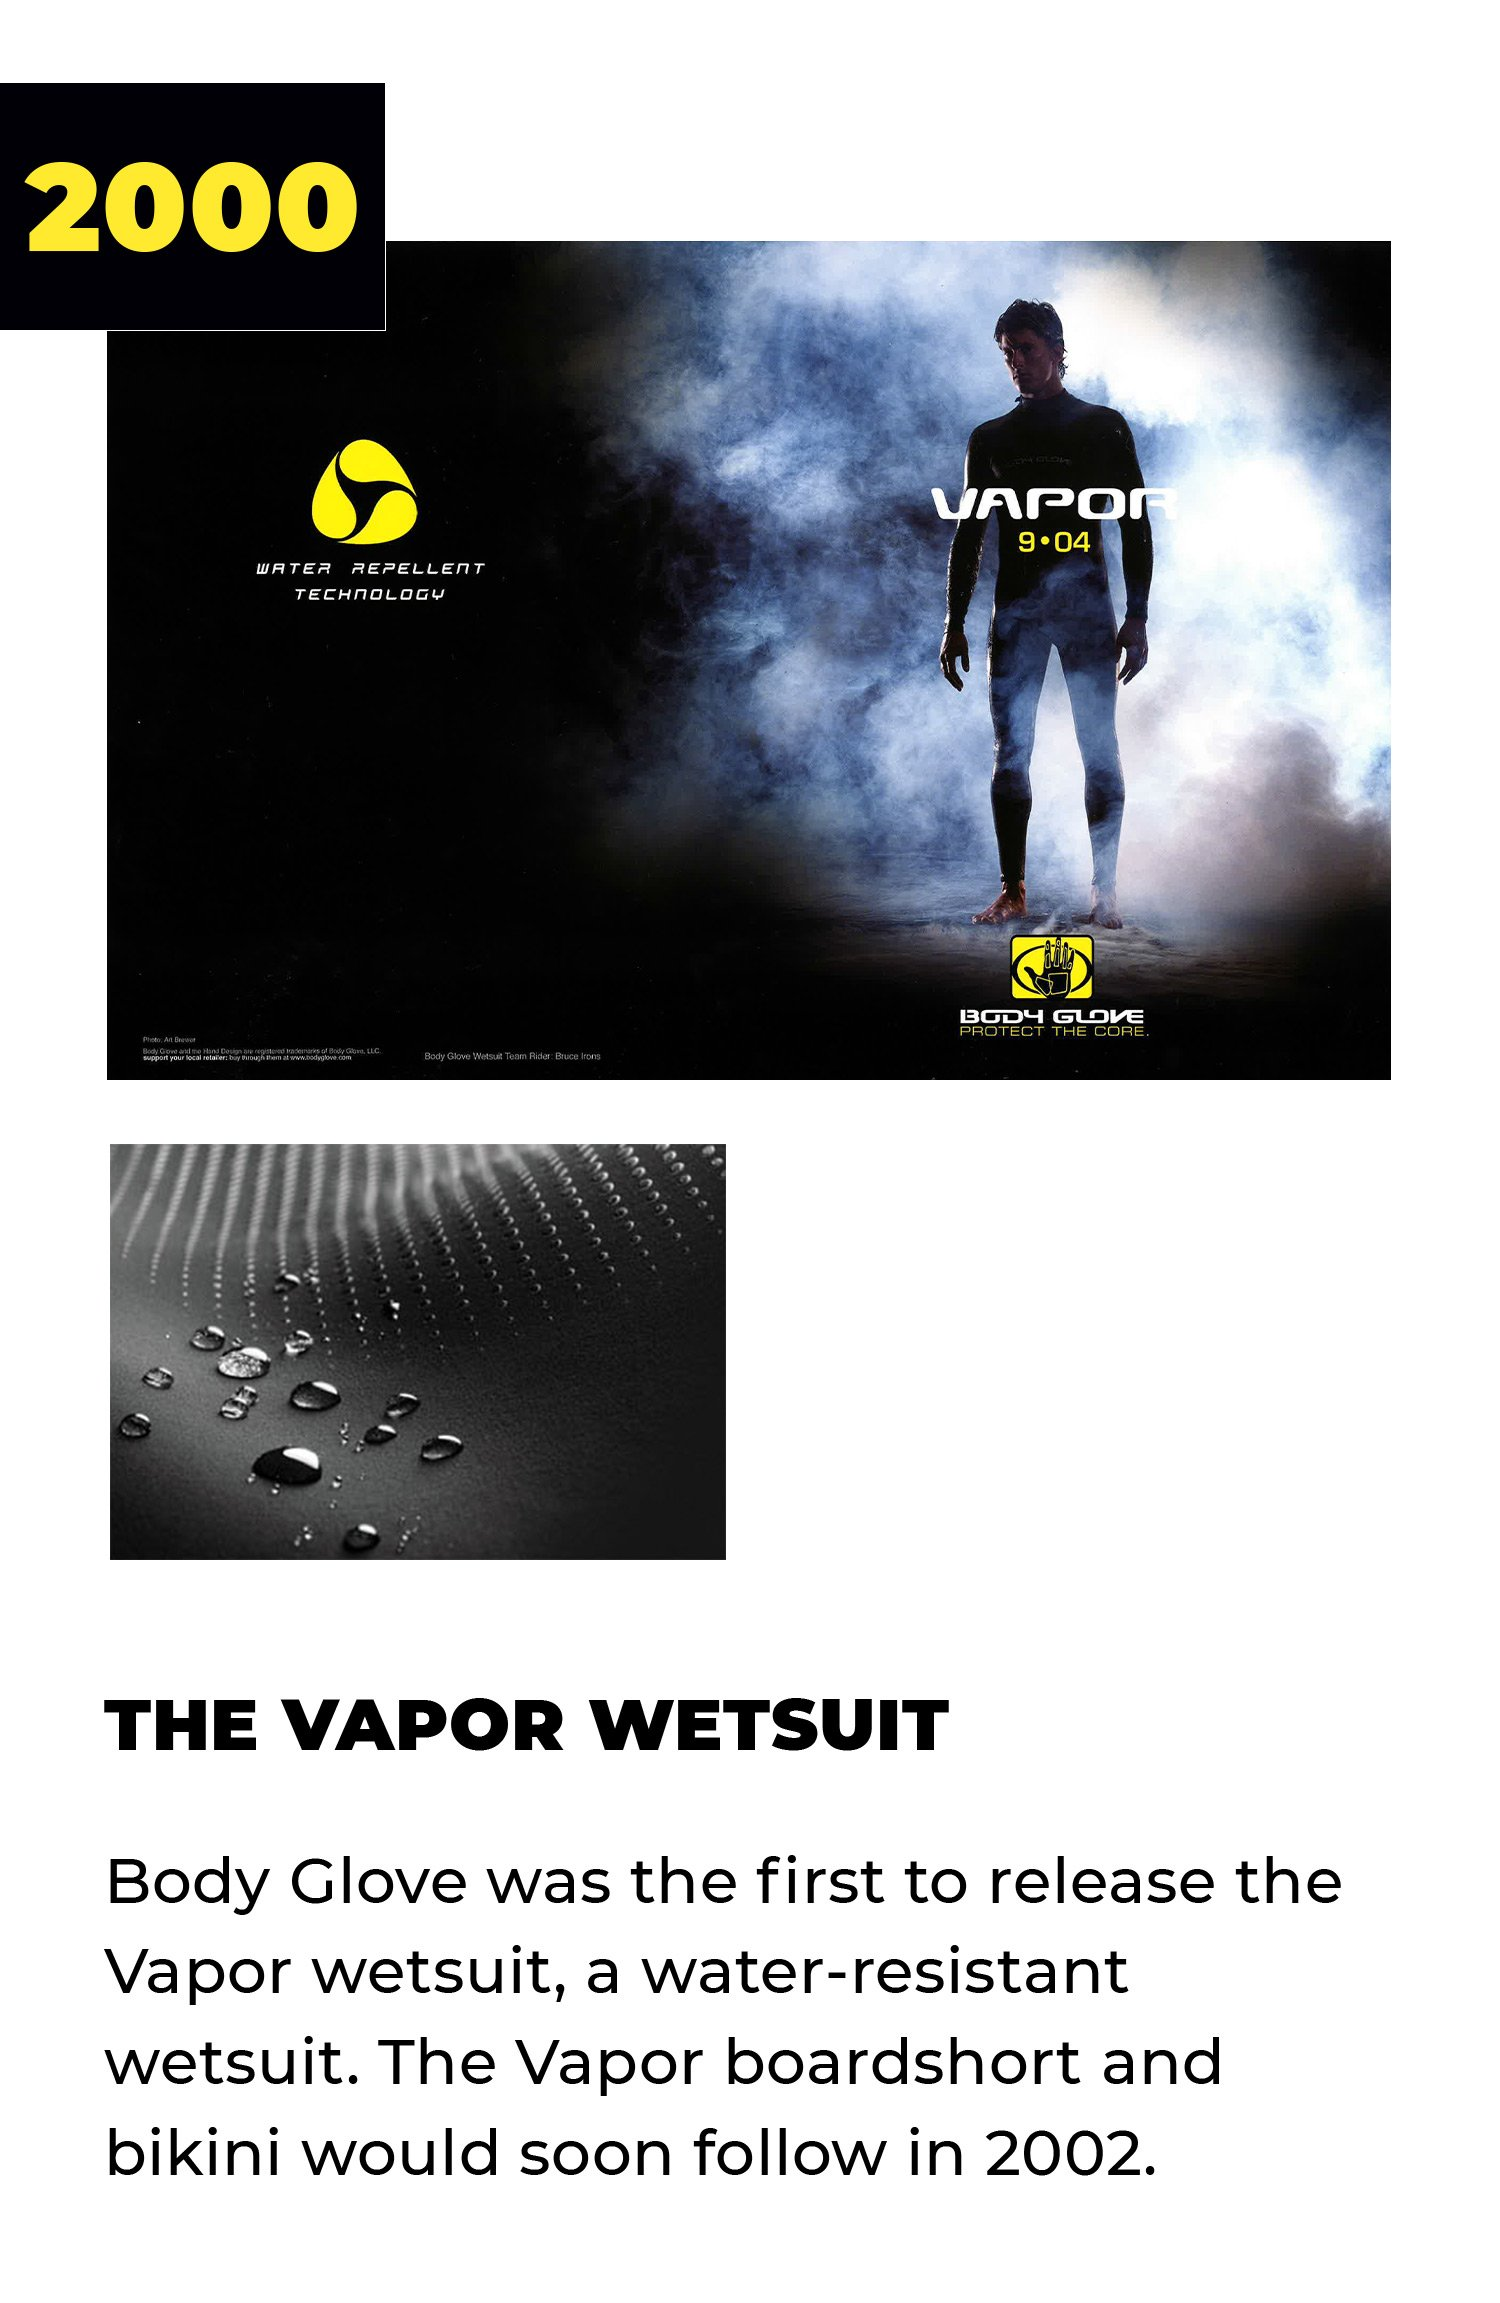 2000 | The Vapor Wetsuit | Body Glove was the first to release the Vapor wetsuit, a water-resistant wetsuit. The Vapor boardshort and bikini would soon follow in 2002.